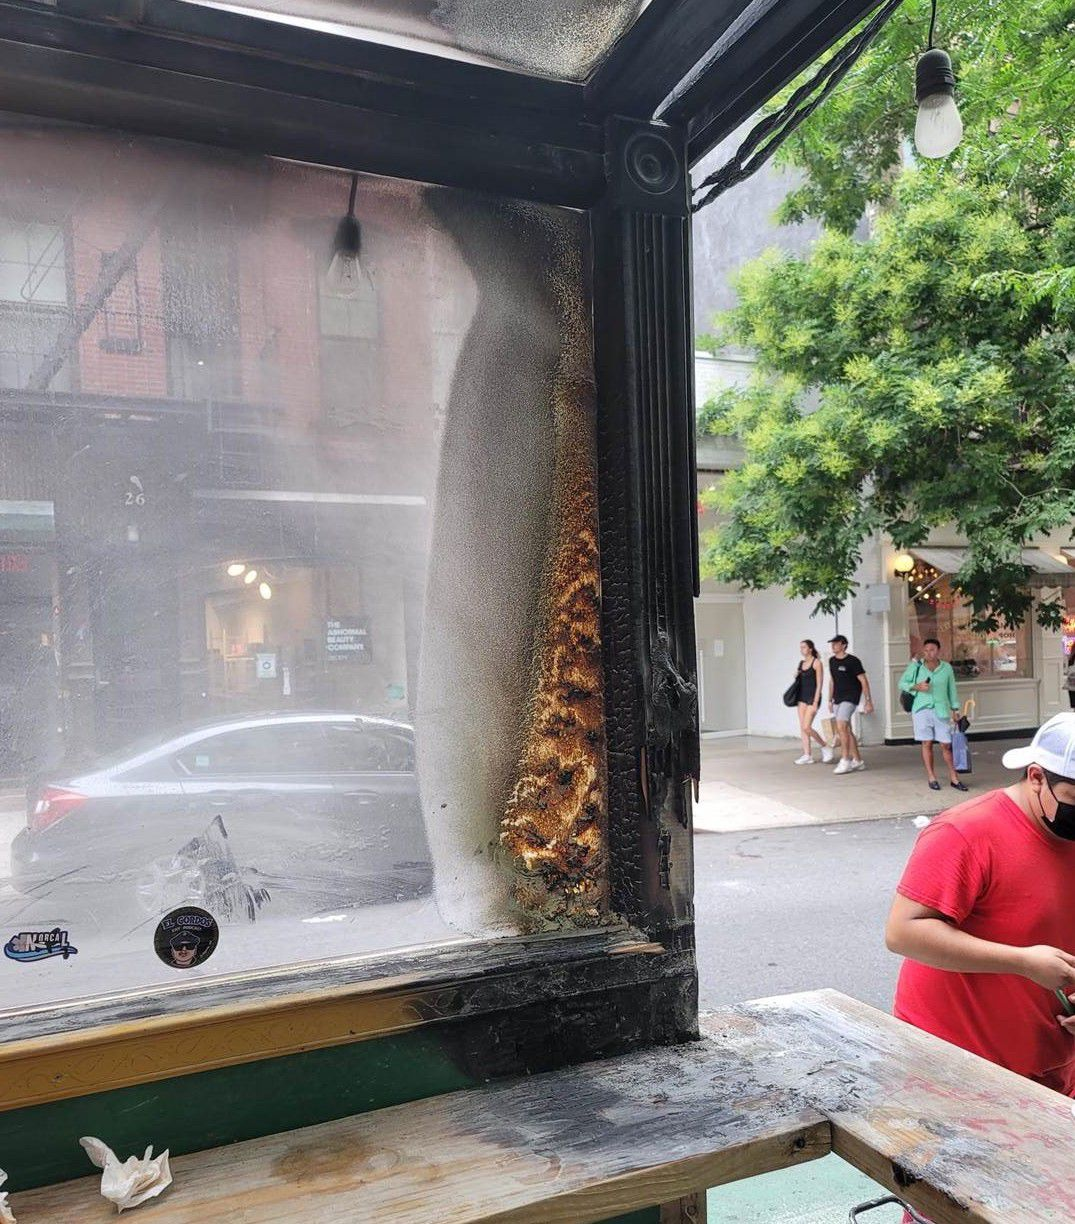 A wooden outdoor dining structure is charred at one end after what appears to have been a recent fire